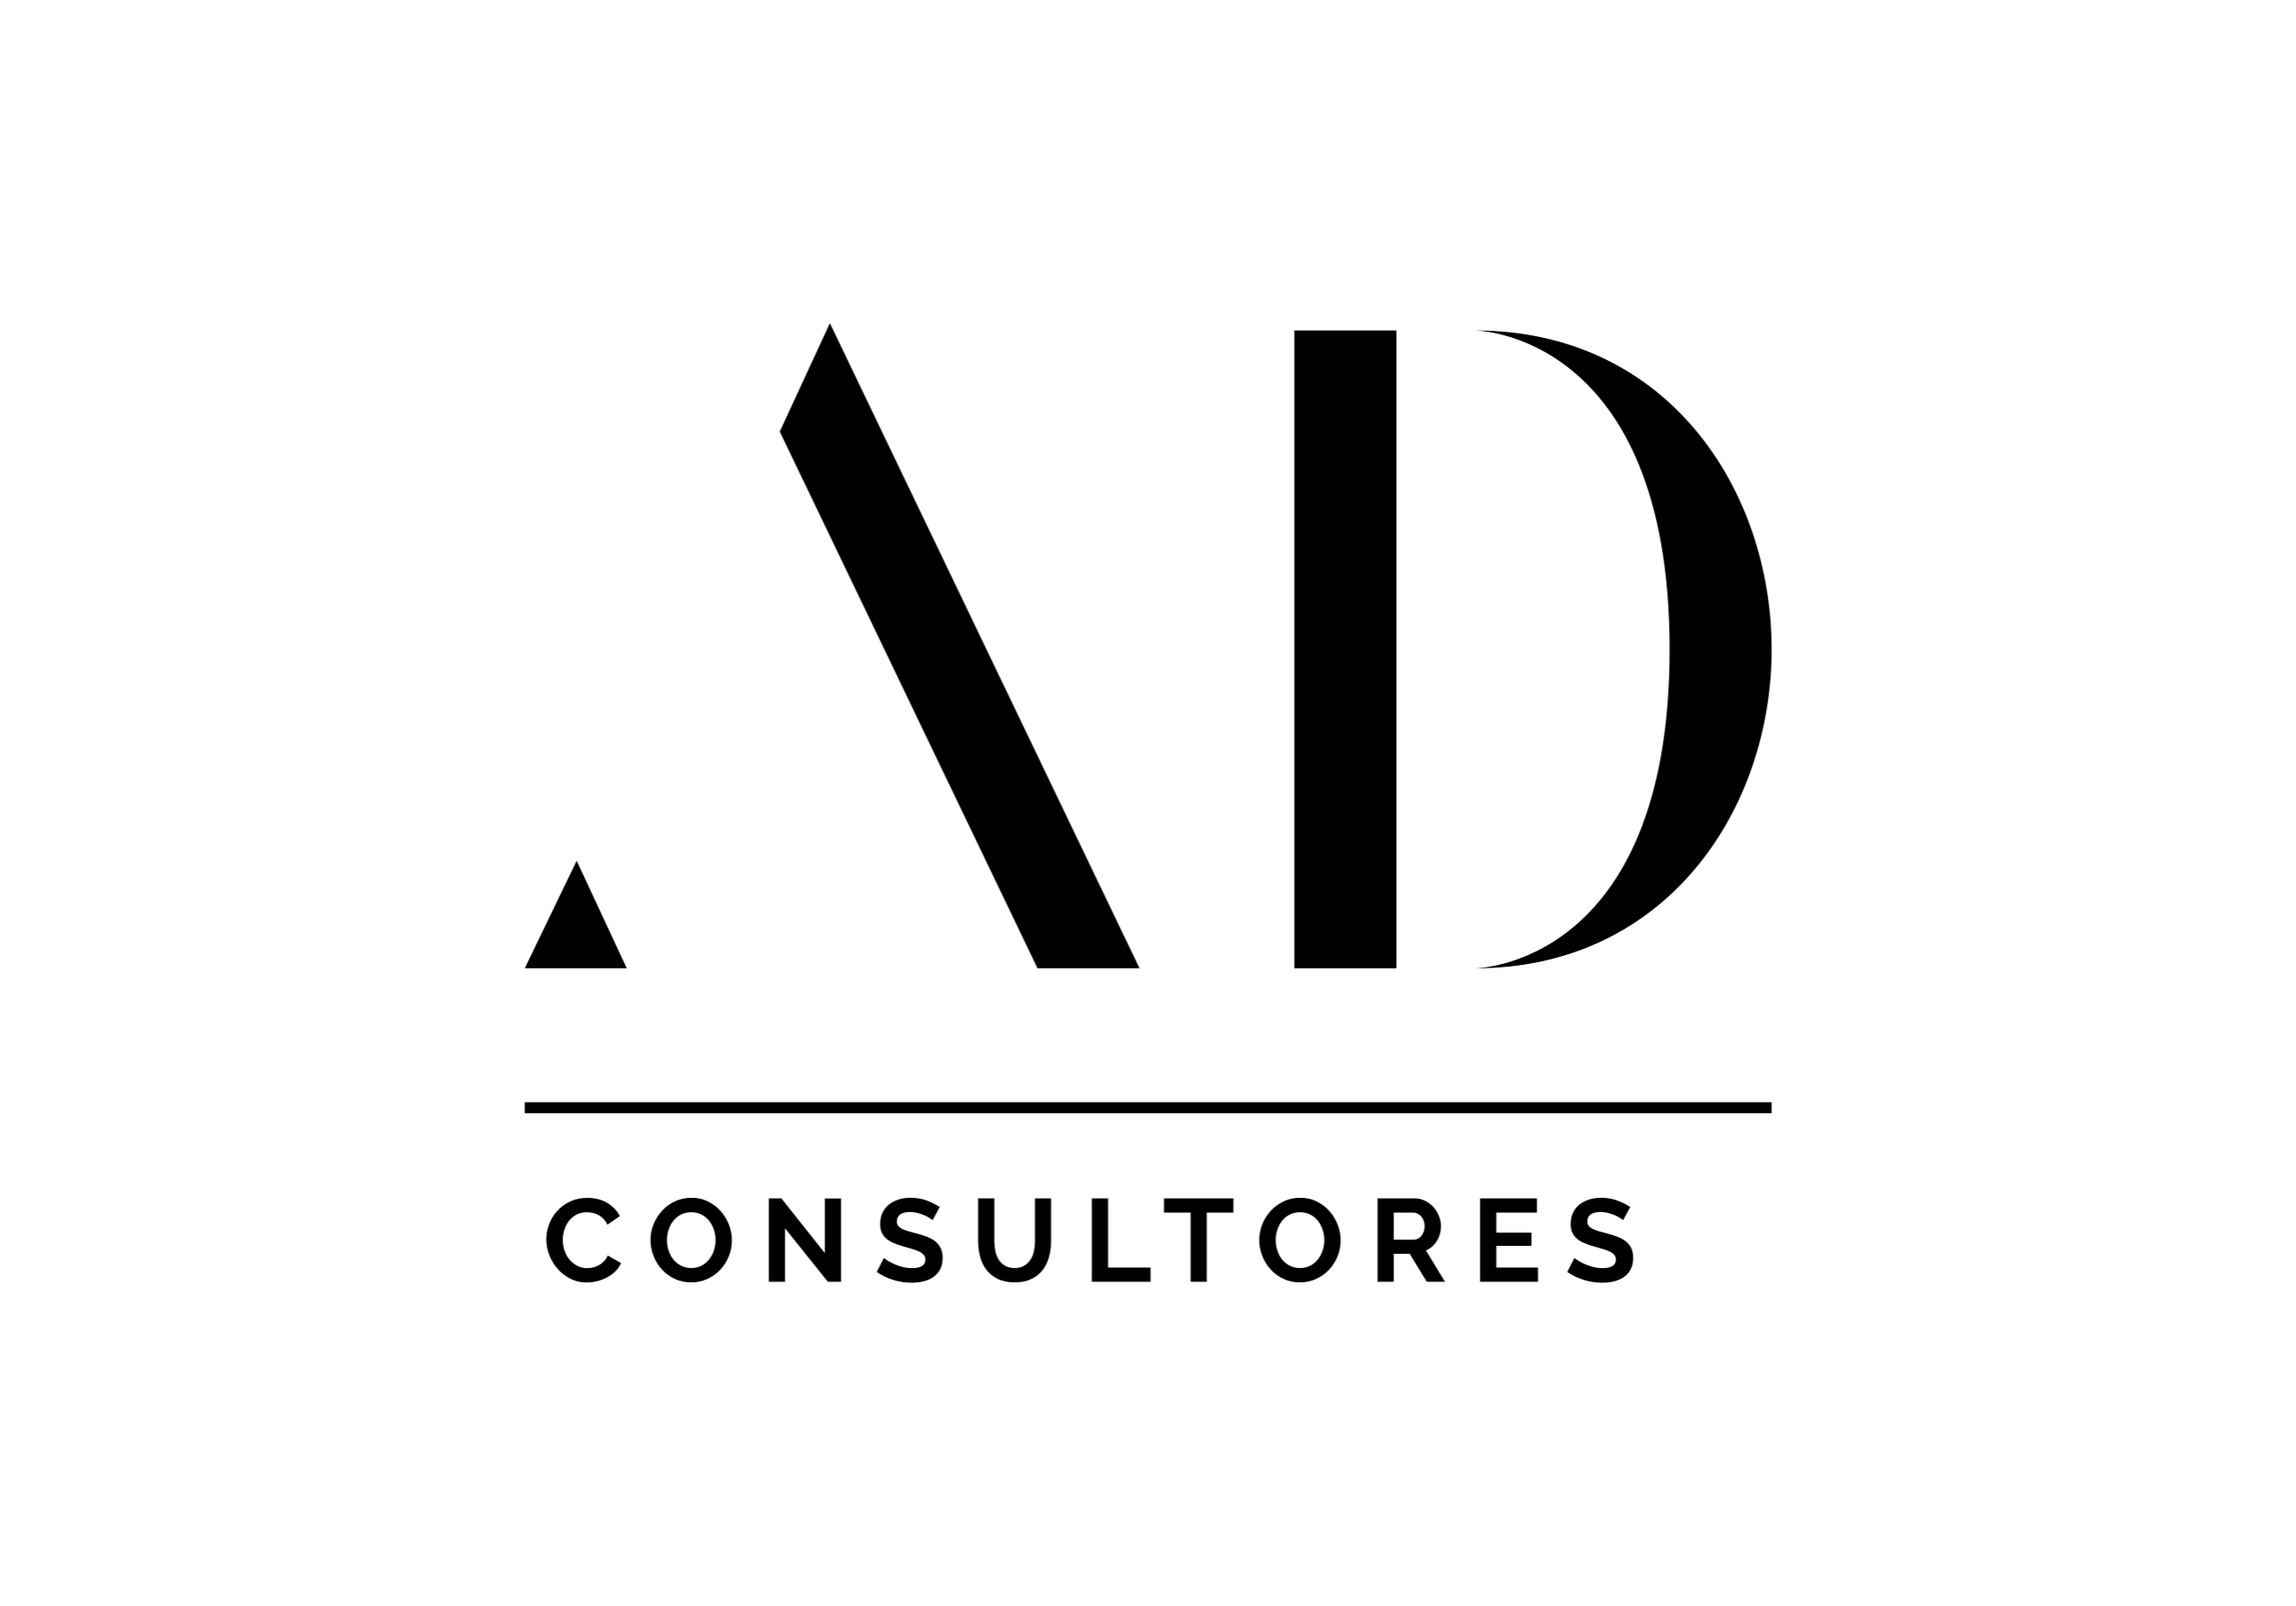 black_logo_transparent_background